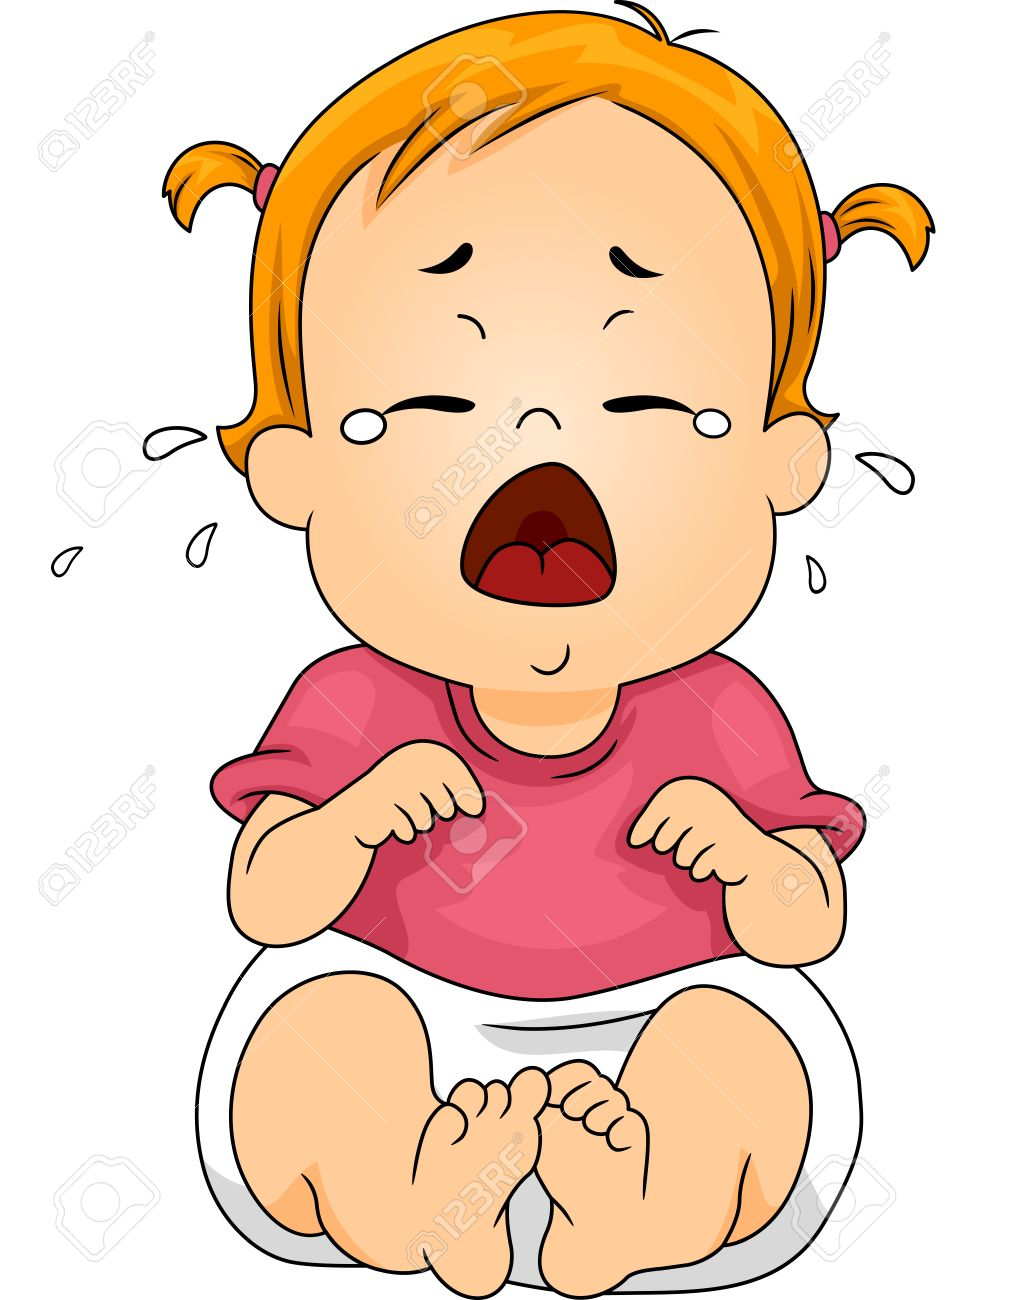 Crying baby images clipart picture stock Crying Baby » Clipart Station picture stock